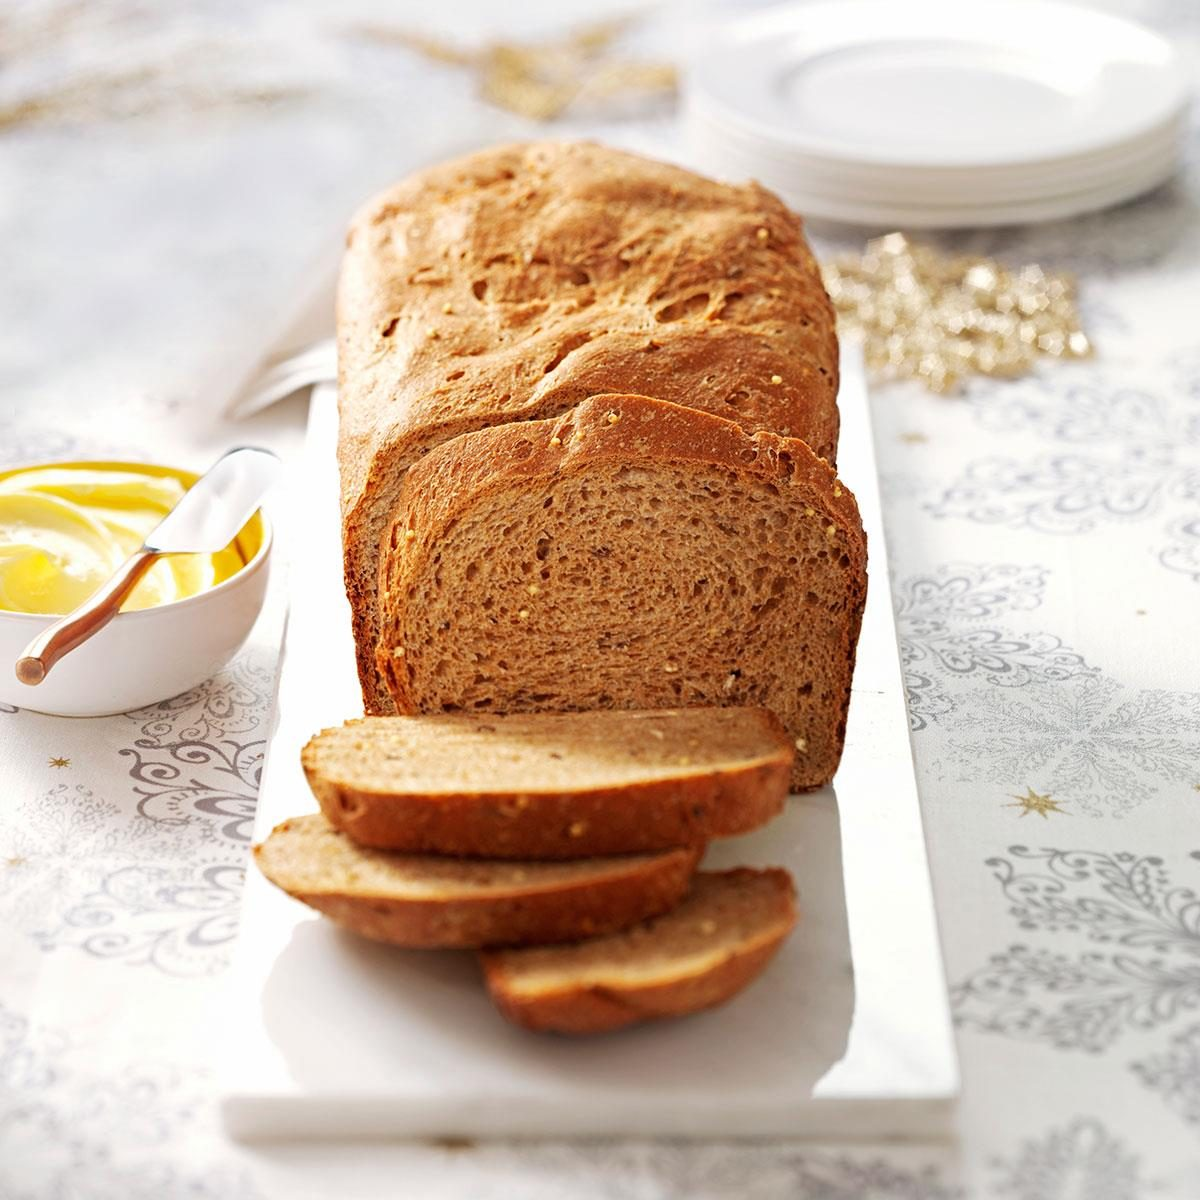 Seeded whole grain loaf